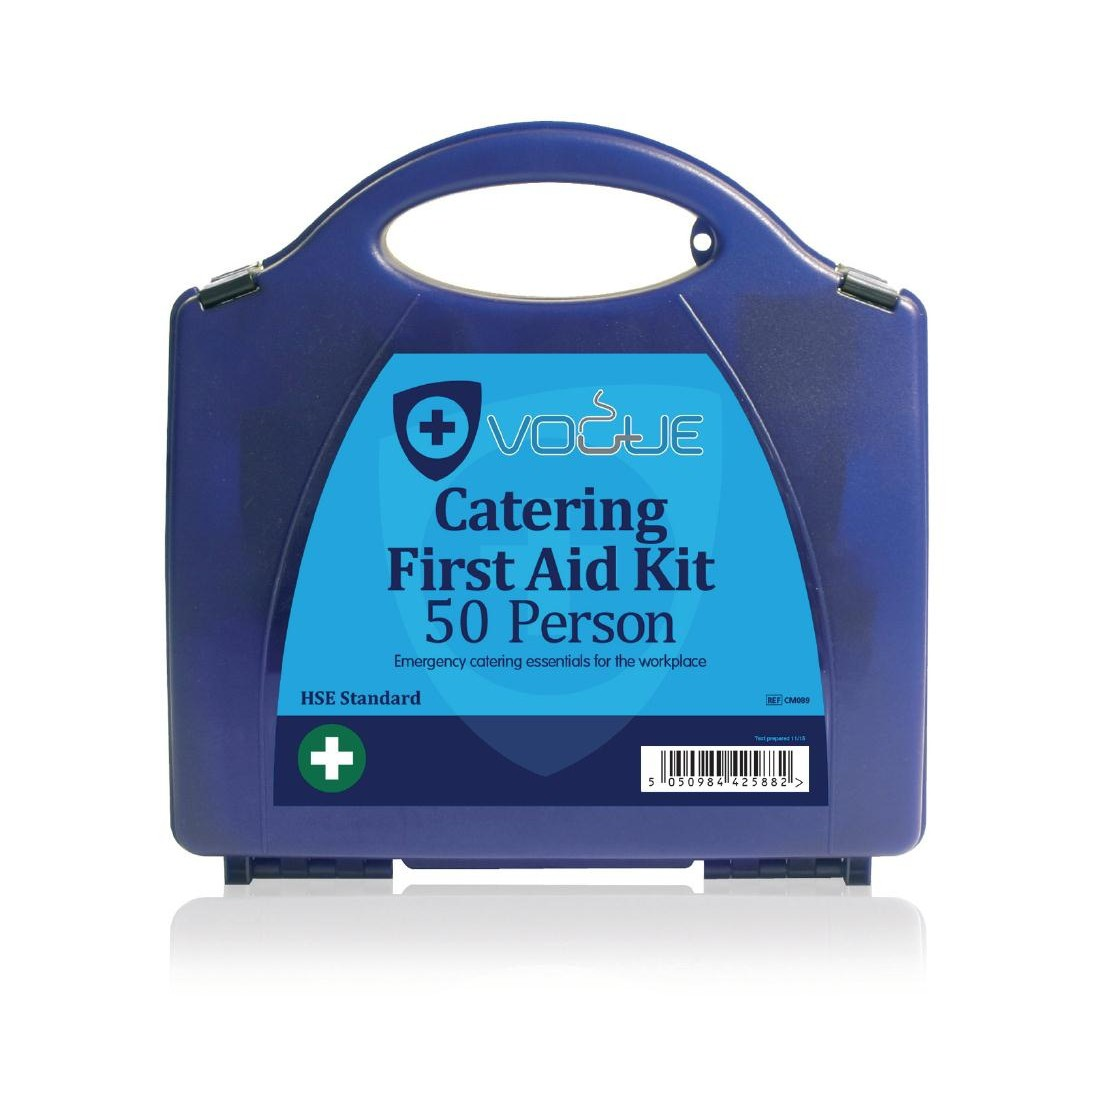 Catering First Aid Kit 50 Person